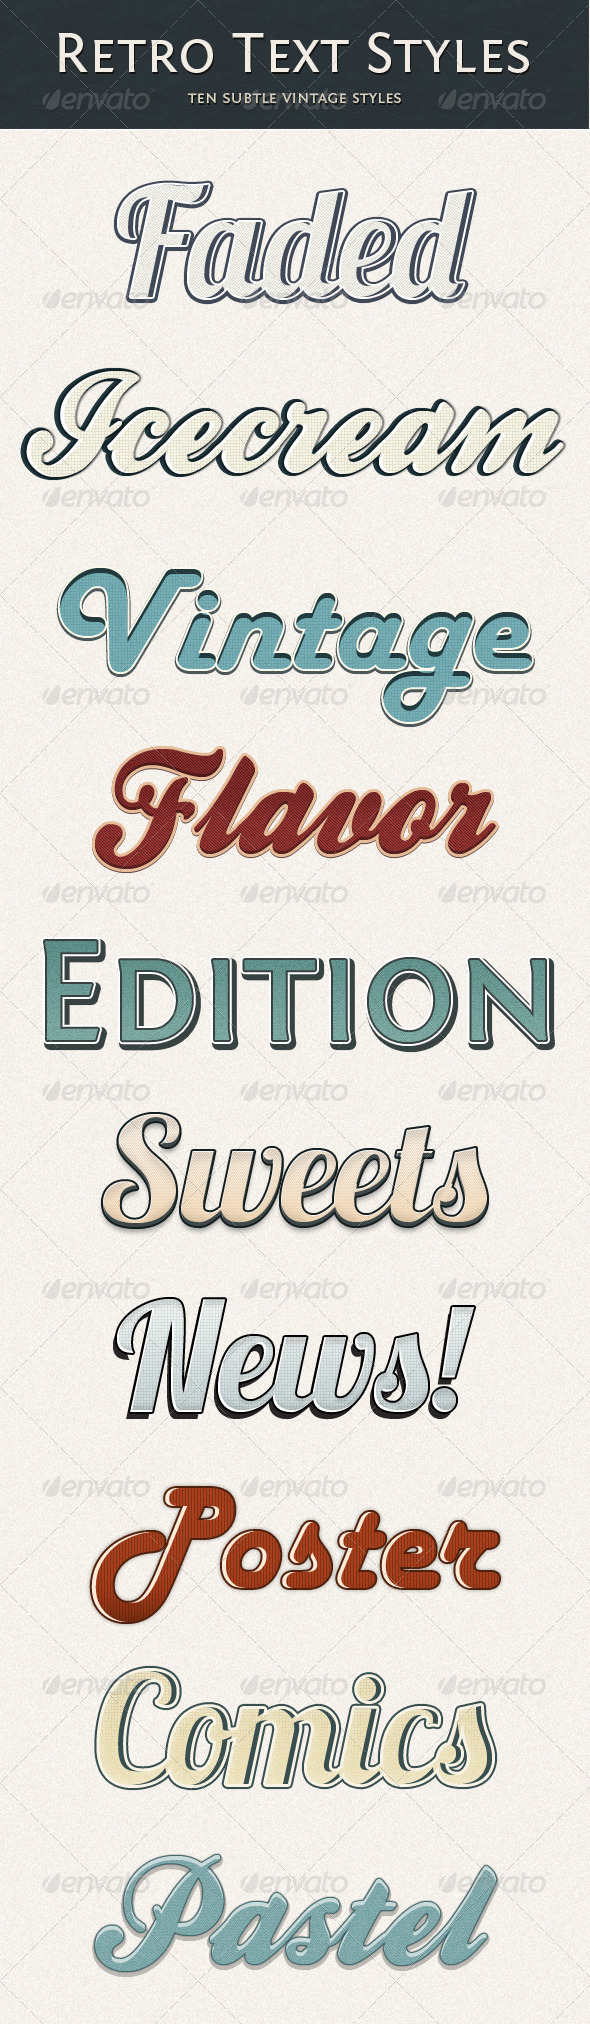 Retro Text Style - Subtle Vintage - Text Effects Styles